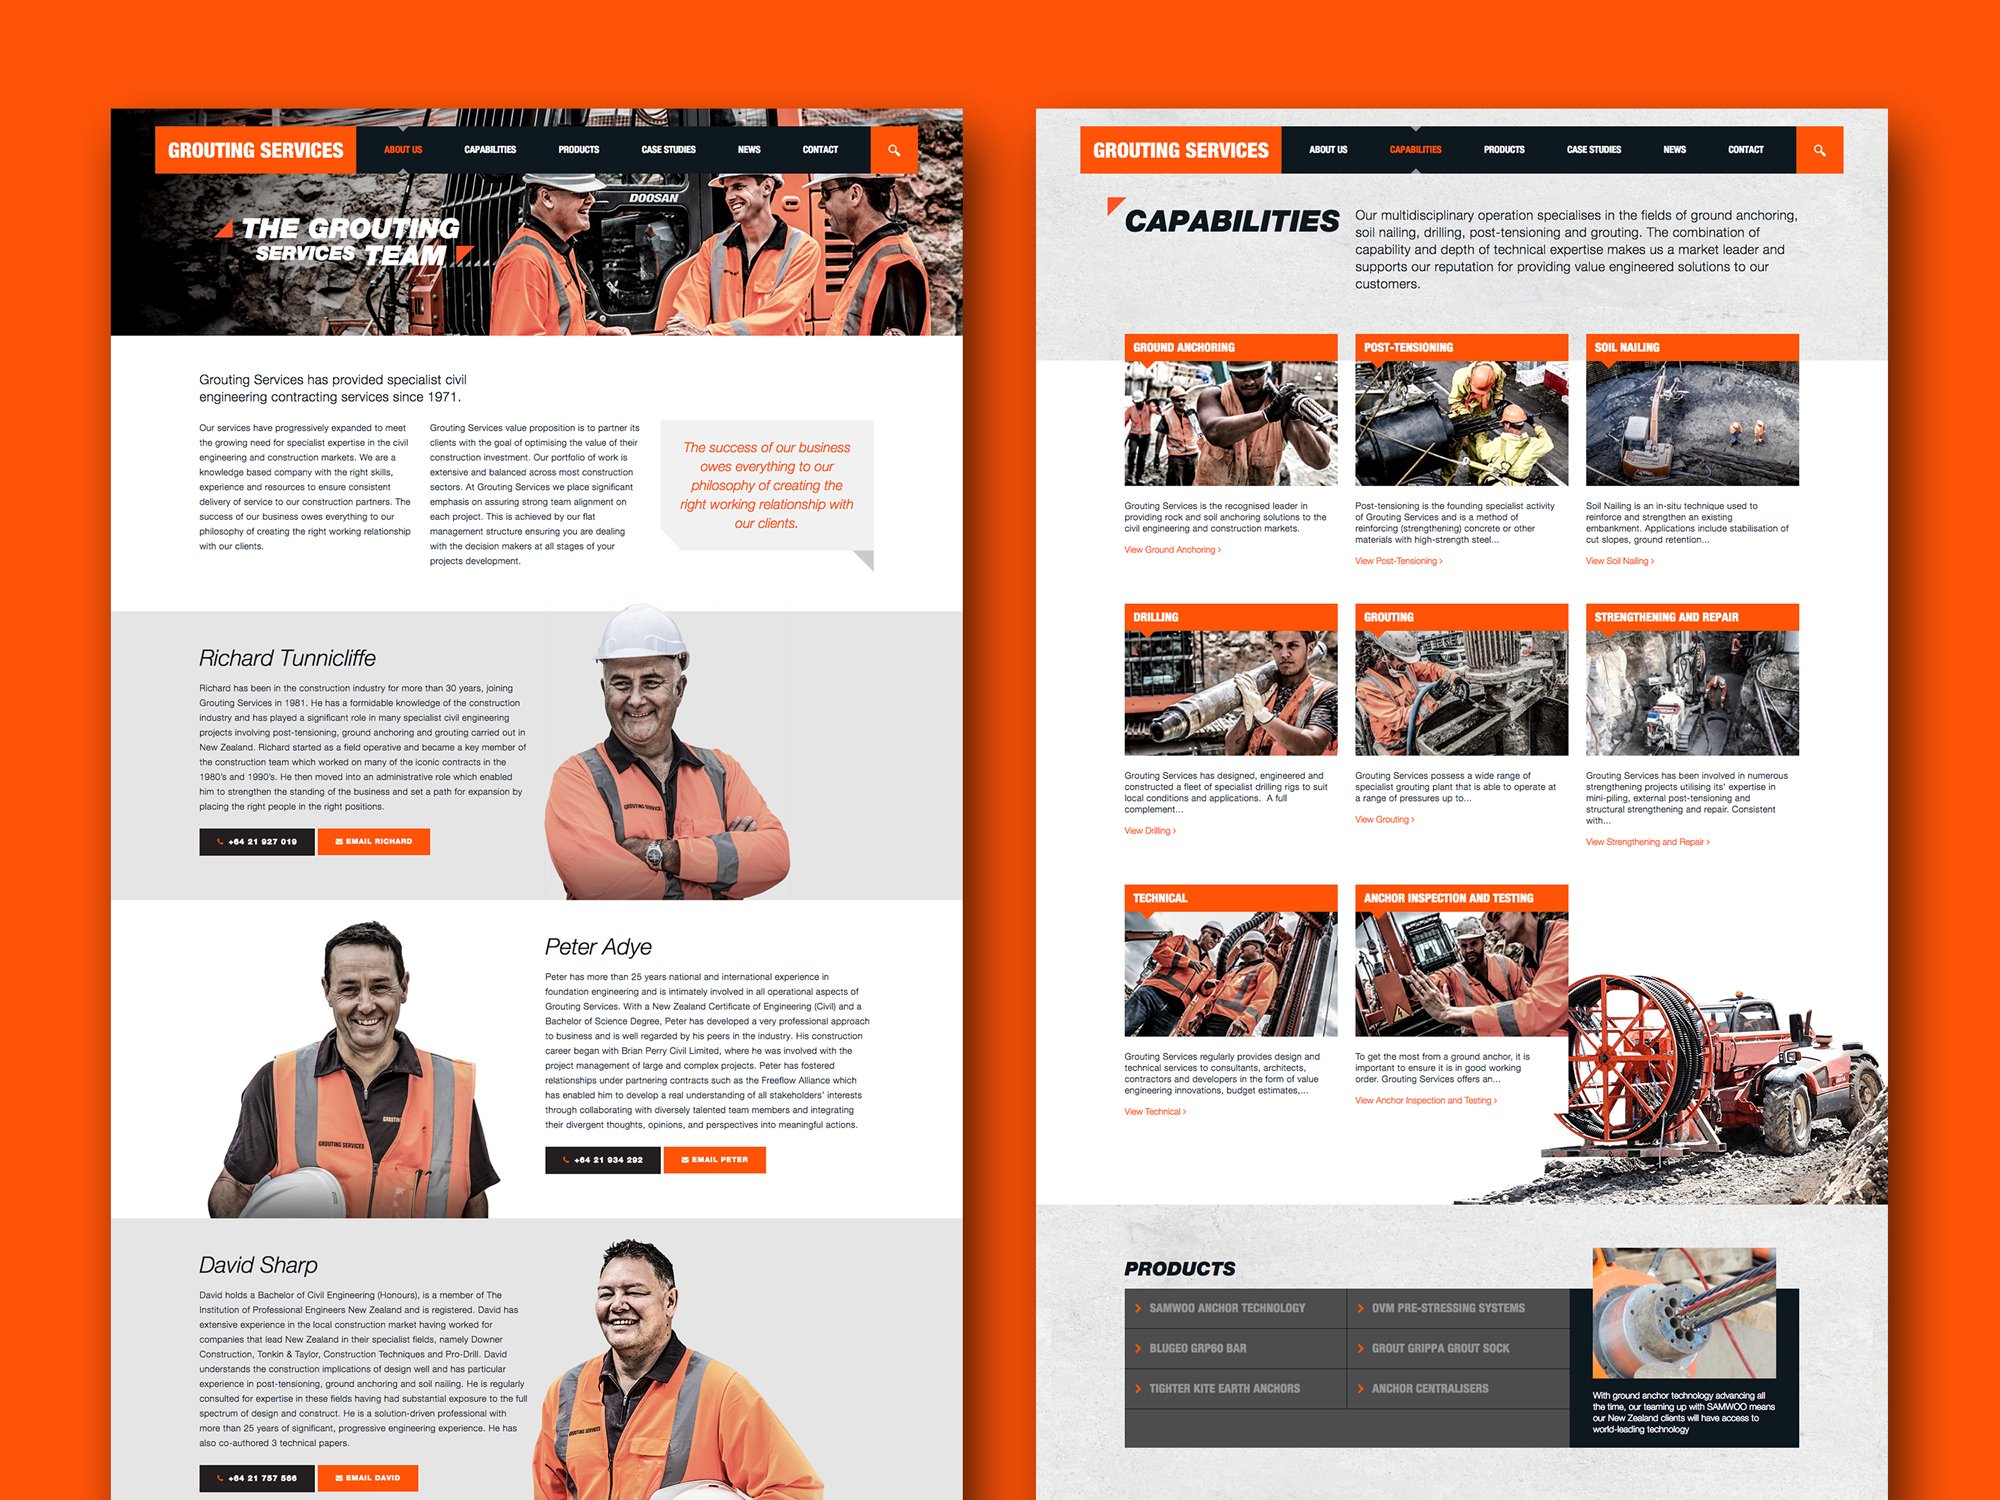 onfire design grouting services branding identity website design 3